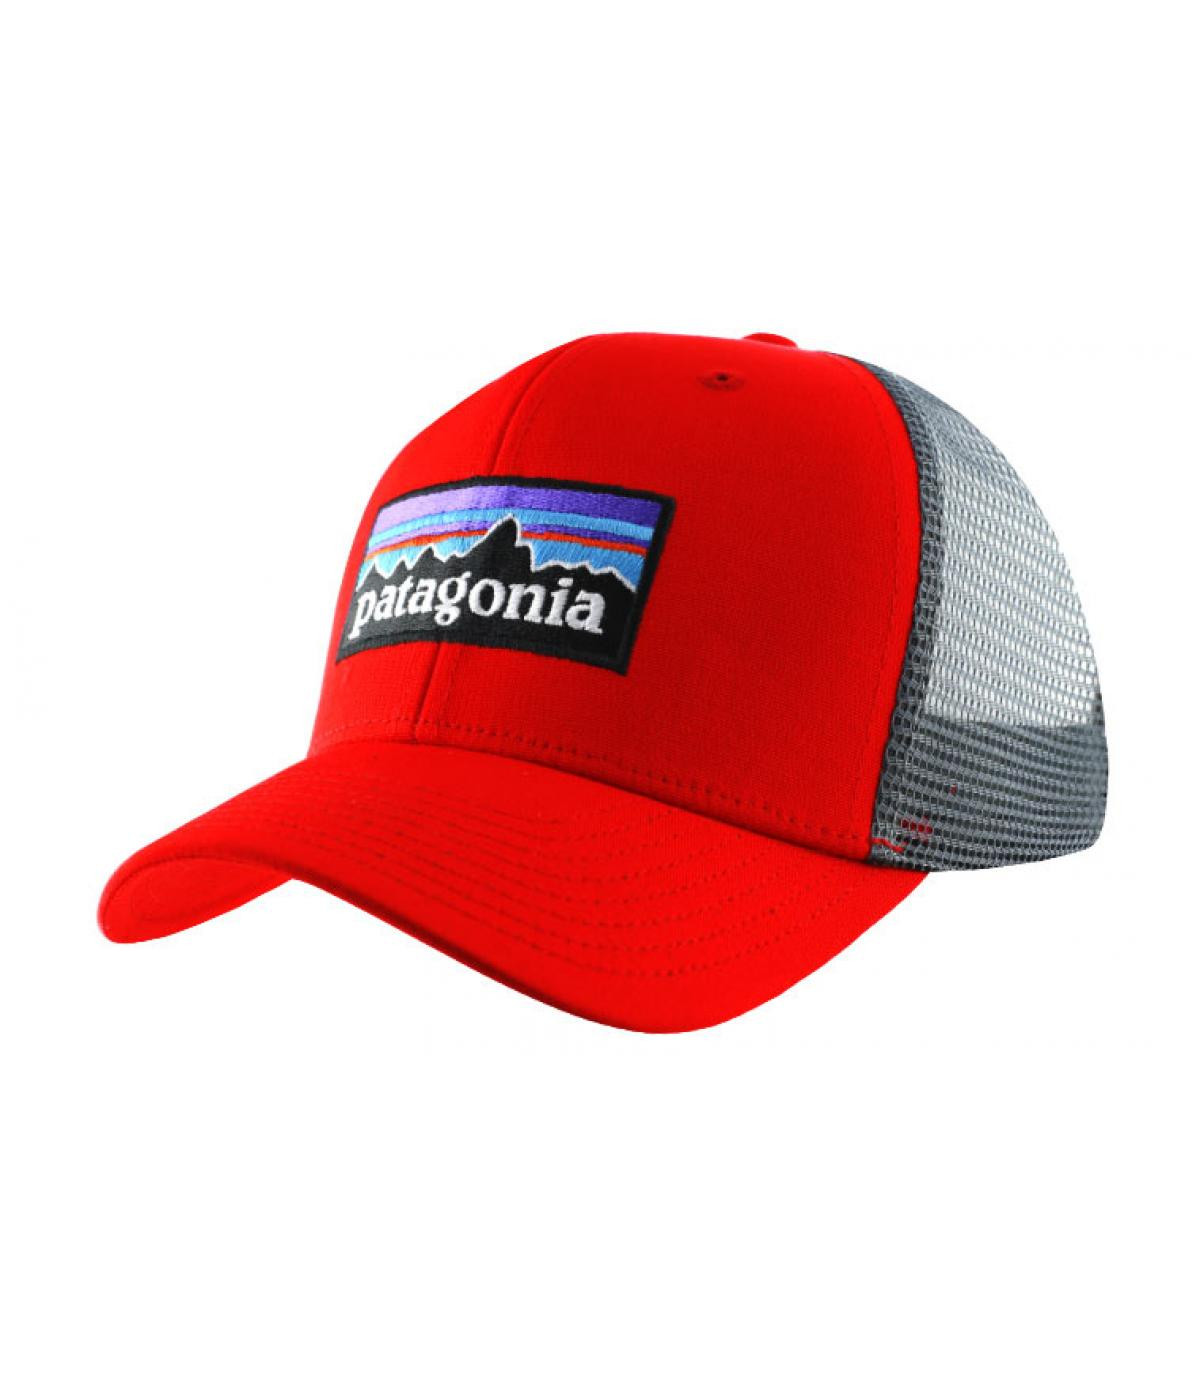 Détails P6 logo trucker hat french red - image 2